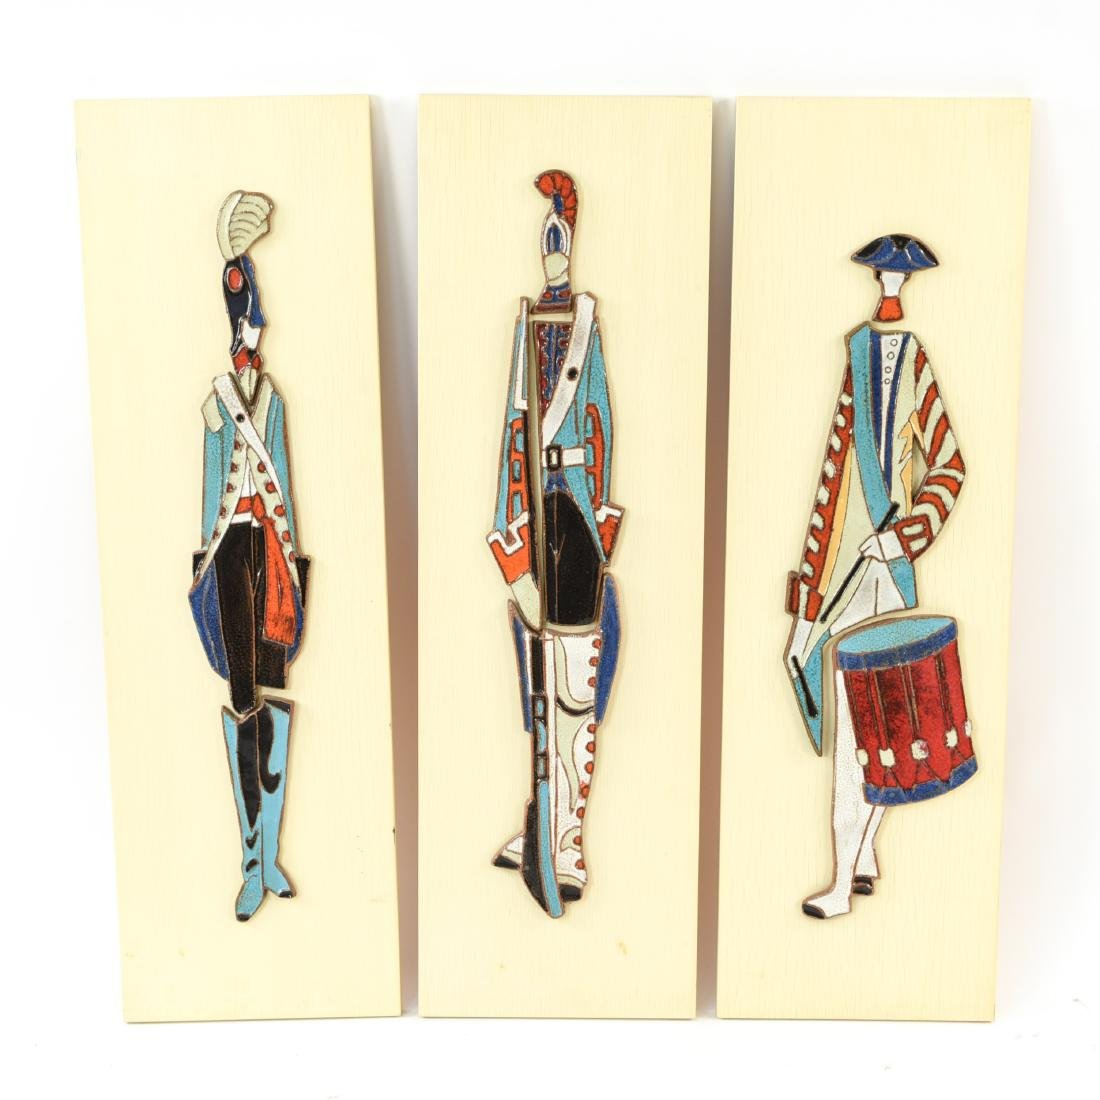 (3) ITALIAN CERAMIC RELIEF SCULPTURE PLAQUES